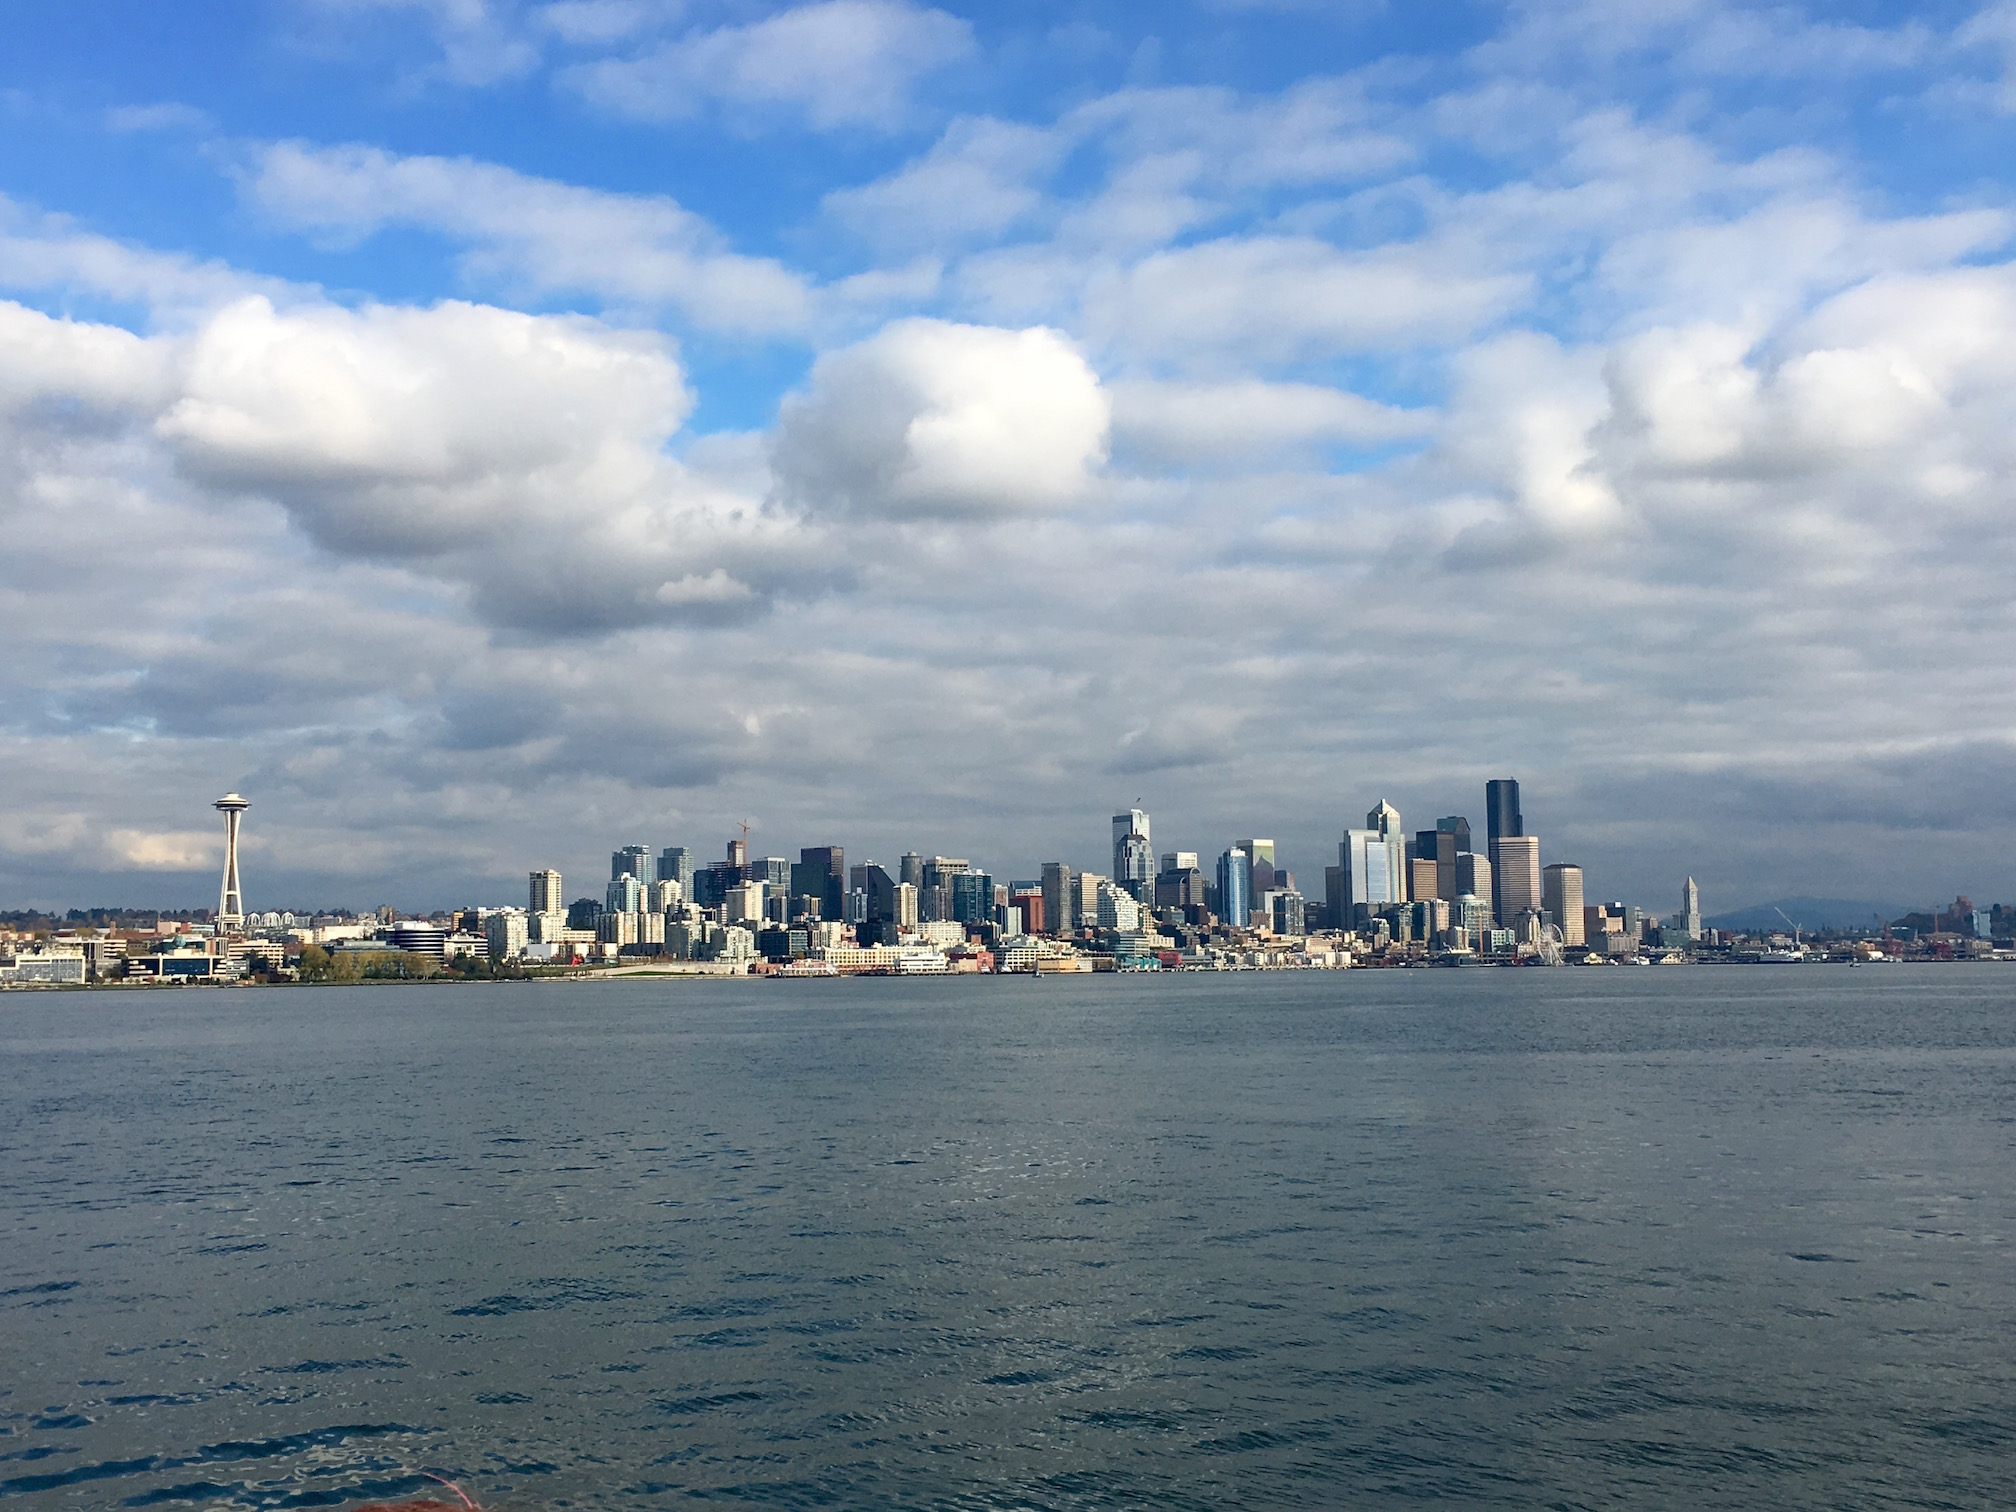 Seattle's skyline from Elliot Bay